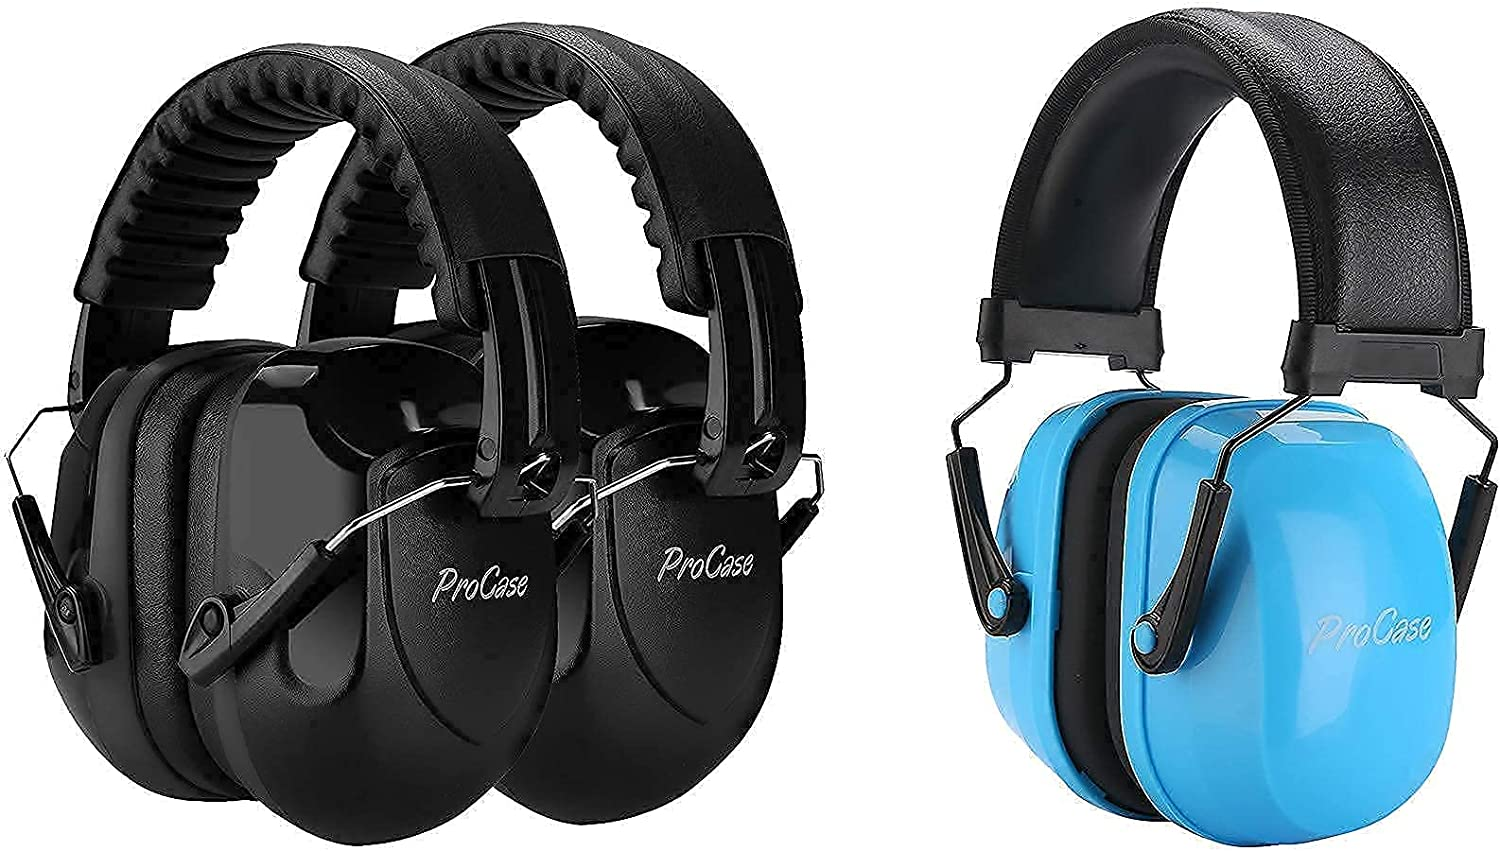 All items in the store Lowest price challenge 2 Pack ProCase Noise Reduction Ear 28dB Muffs NRR Heari Shooter